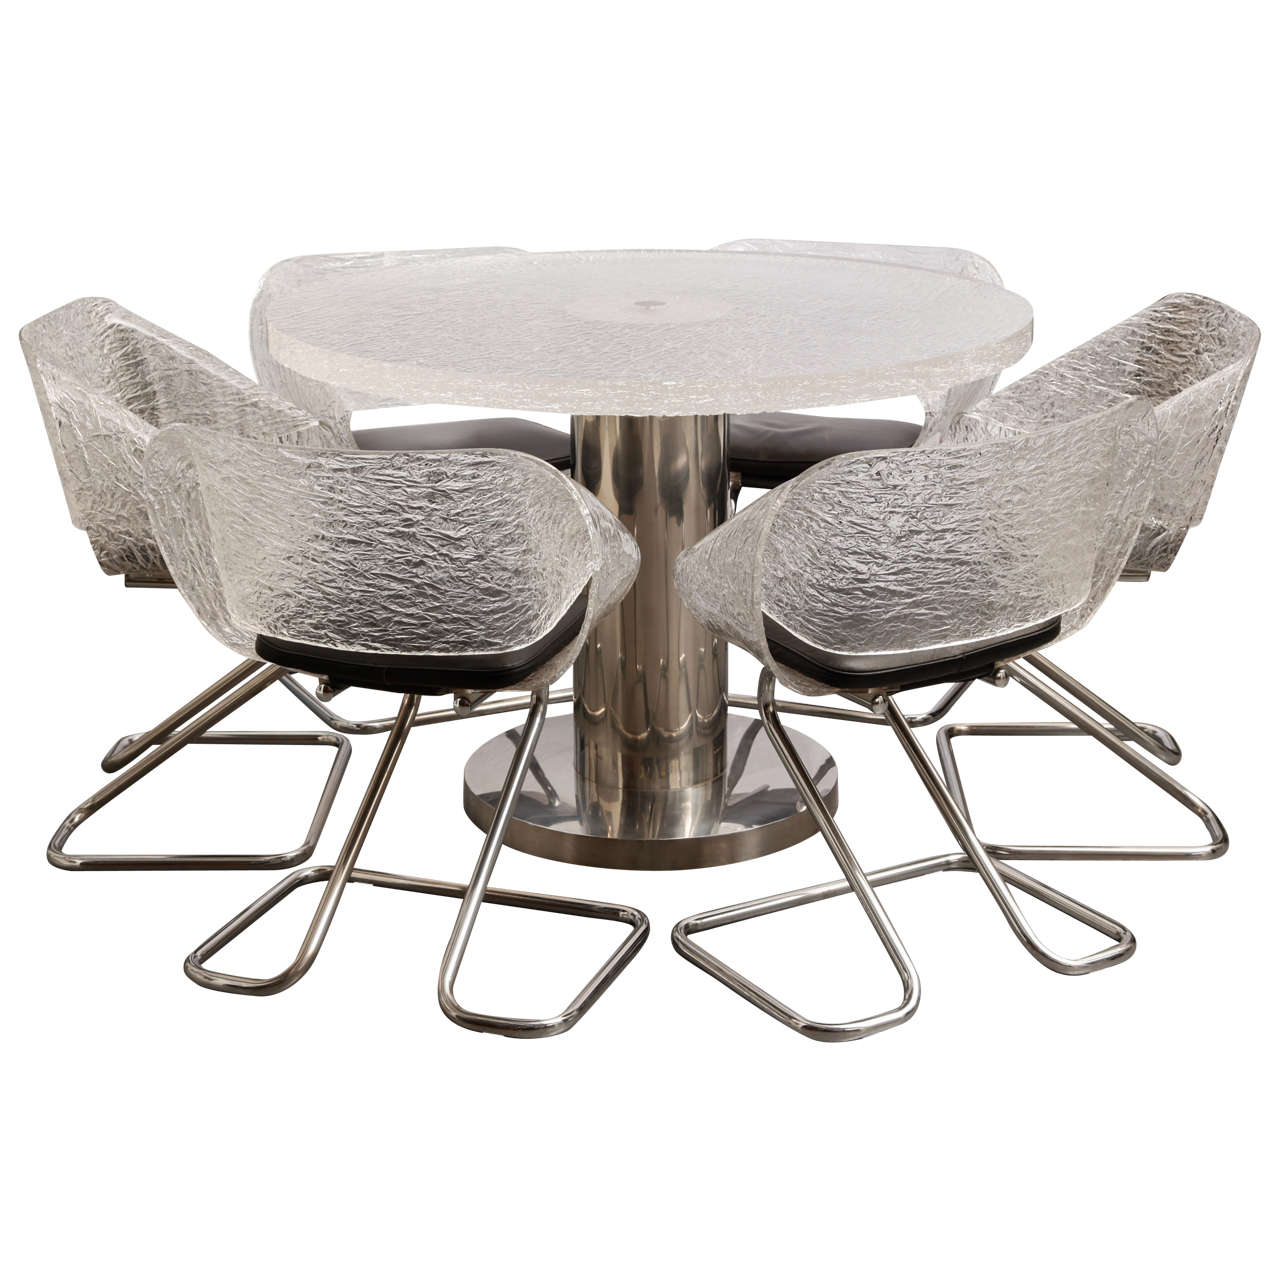 dining chairs italian design best affordable office chair guzzini plexiglas table and six